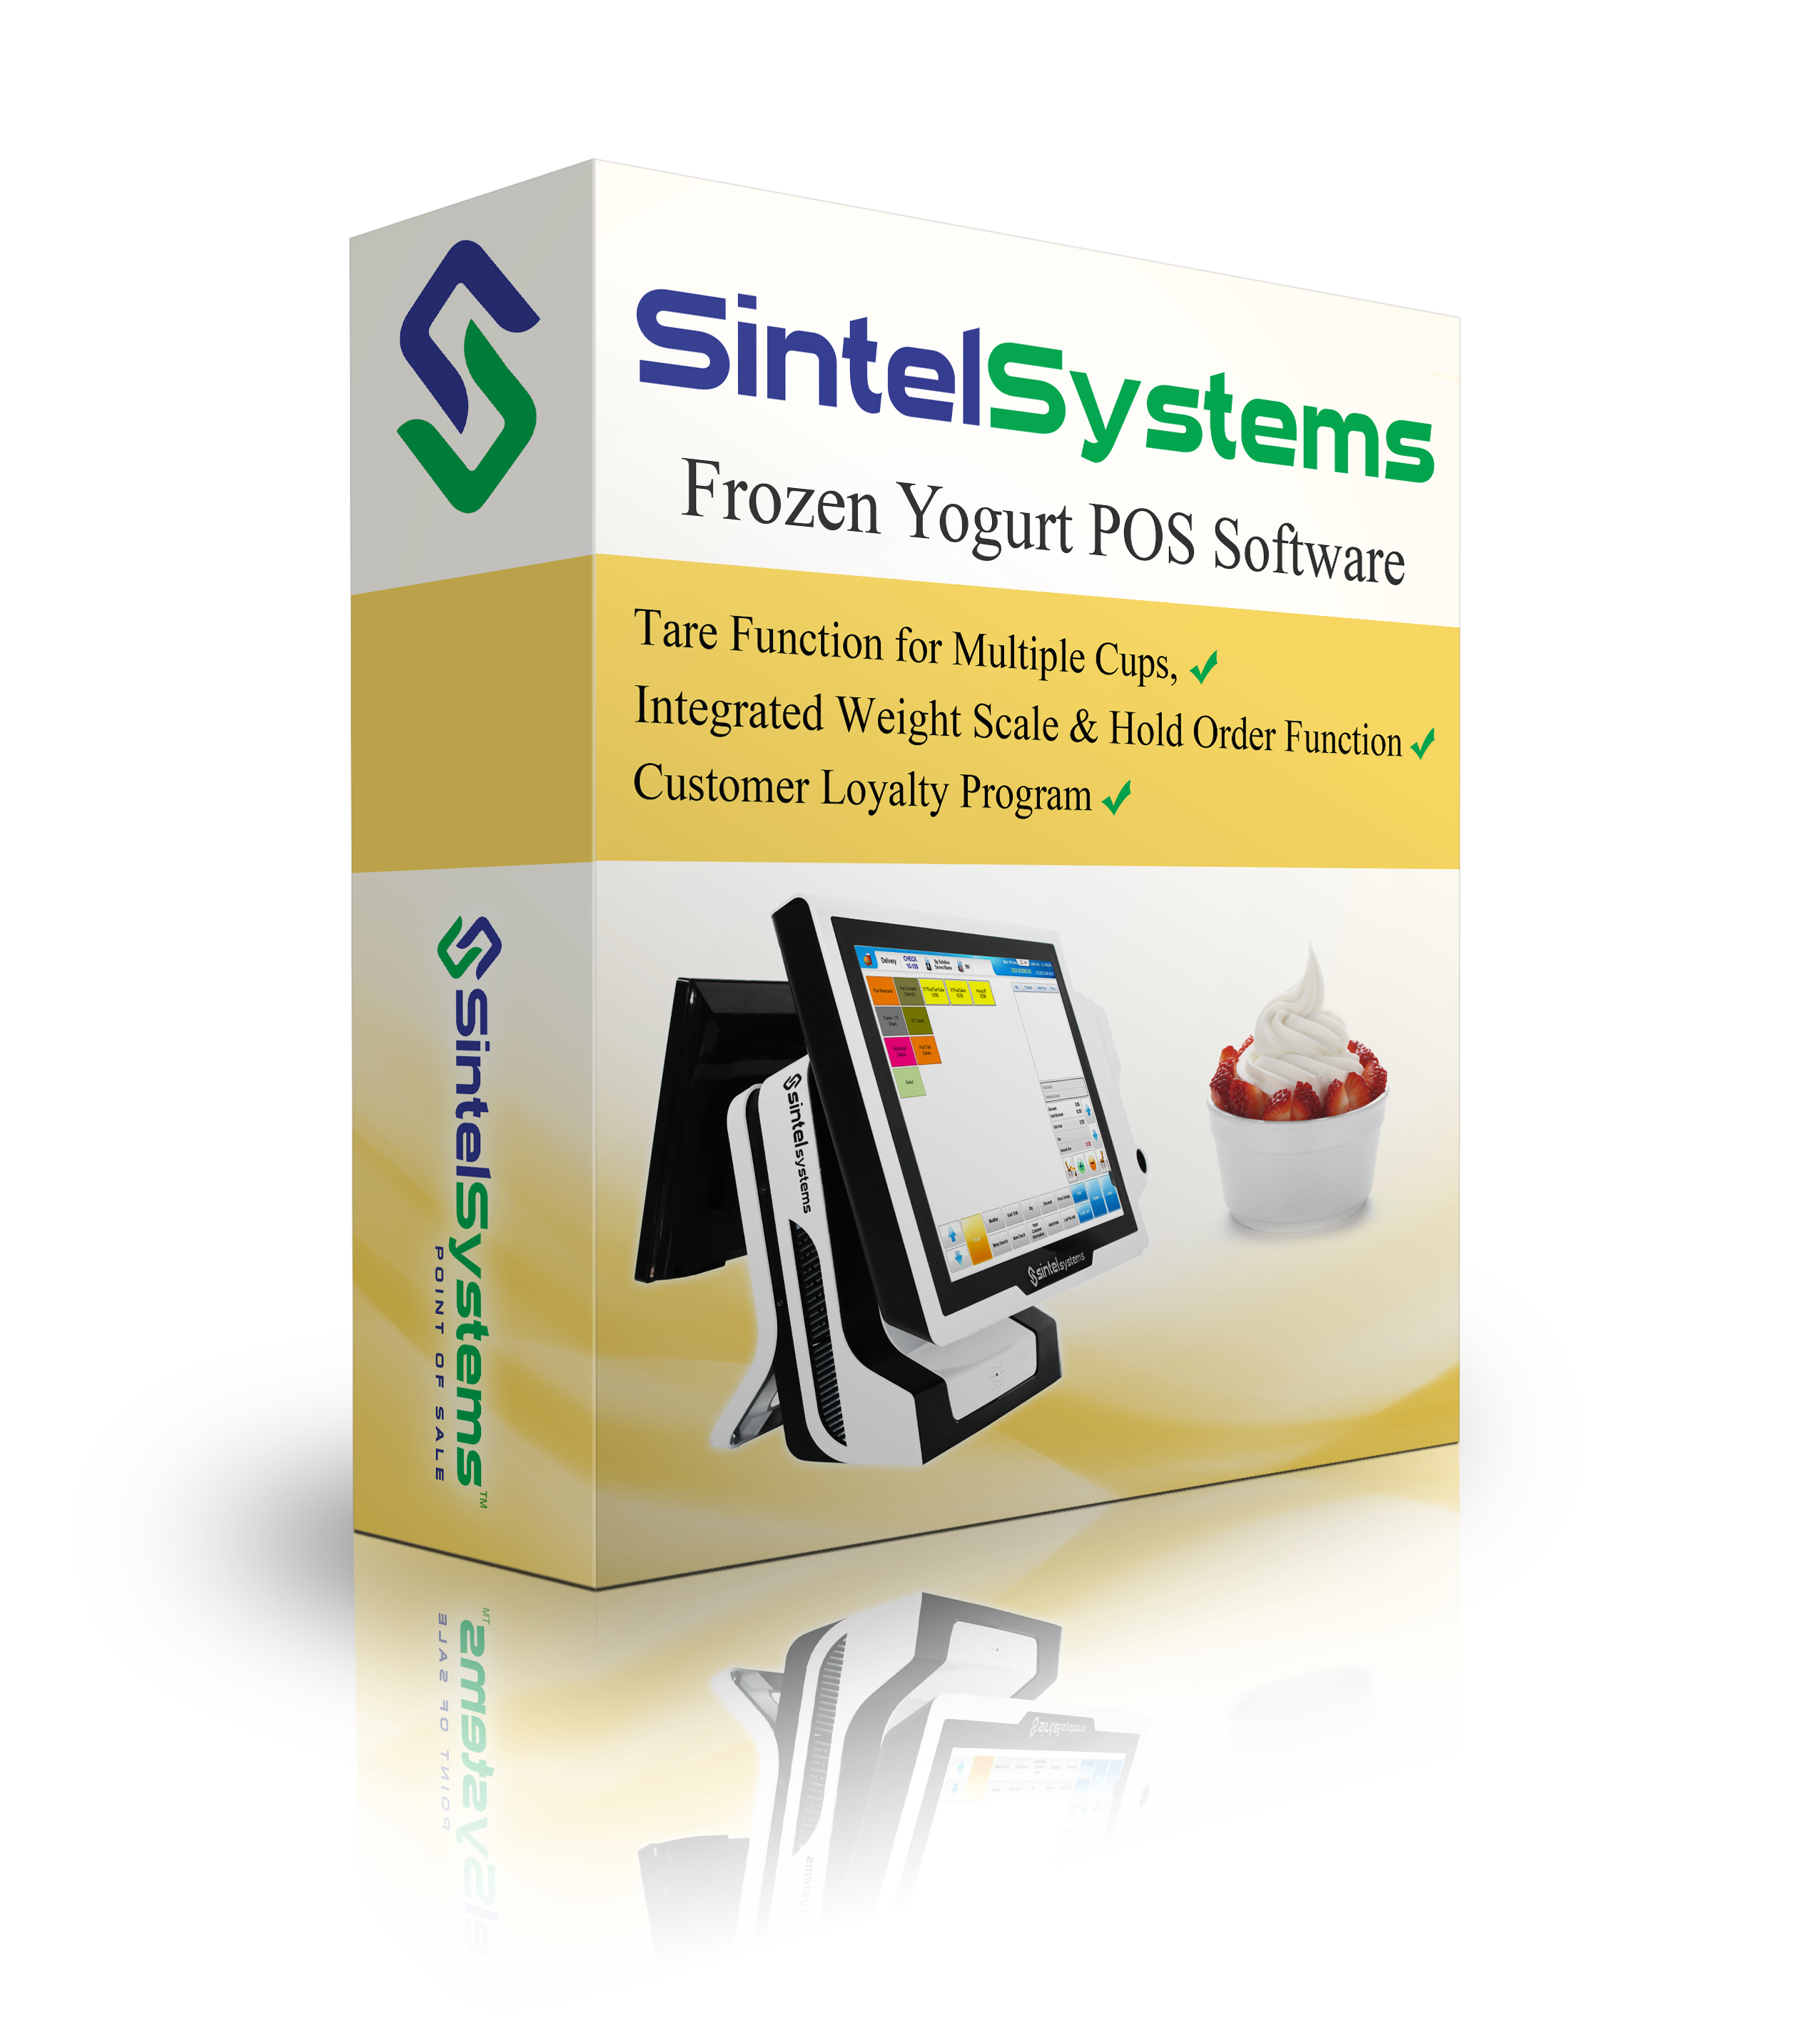 Frozen-Yogurt-Point-of-Sale-POS-Software-Sintel-Systems-855-POS-SALE